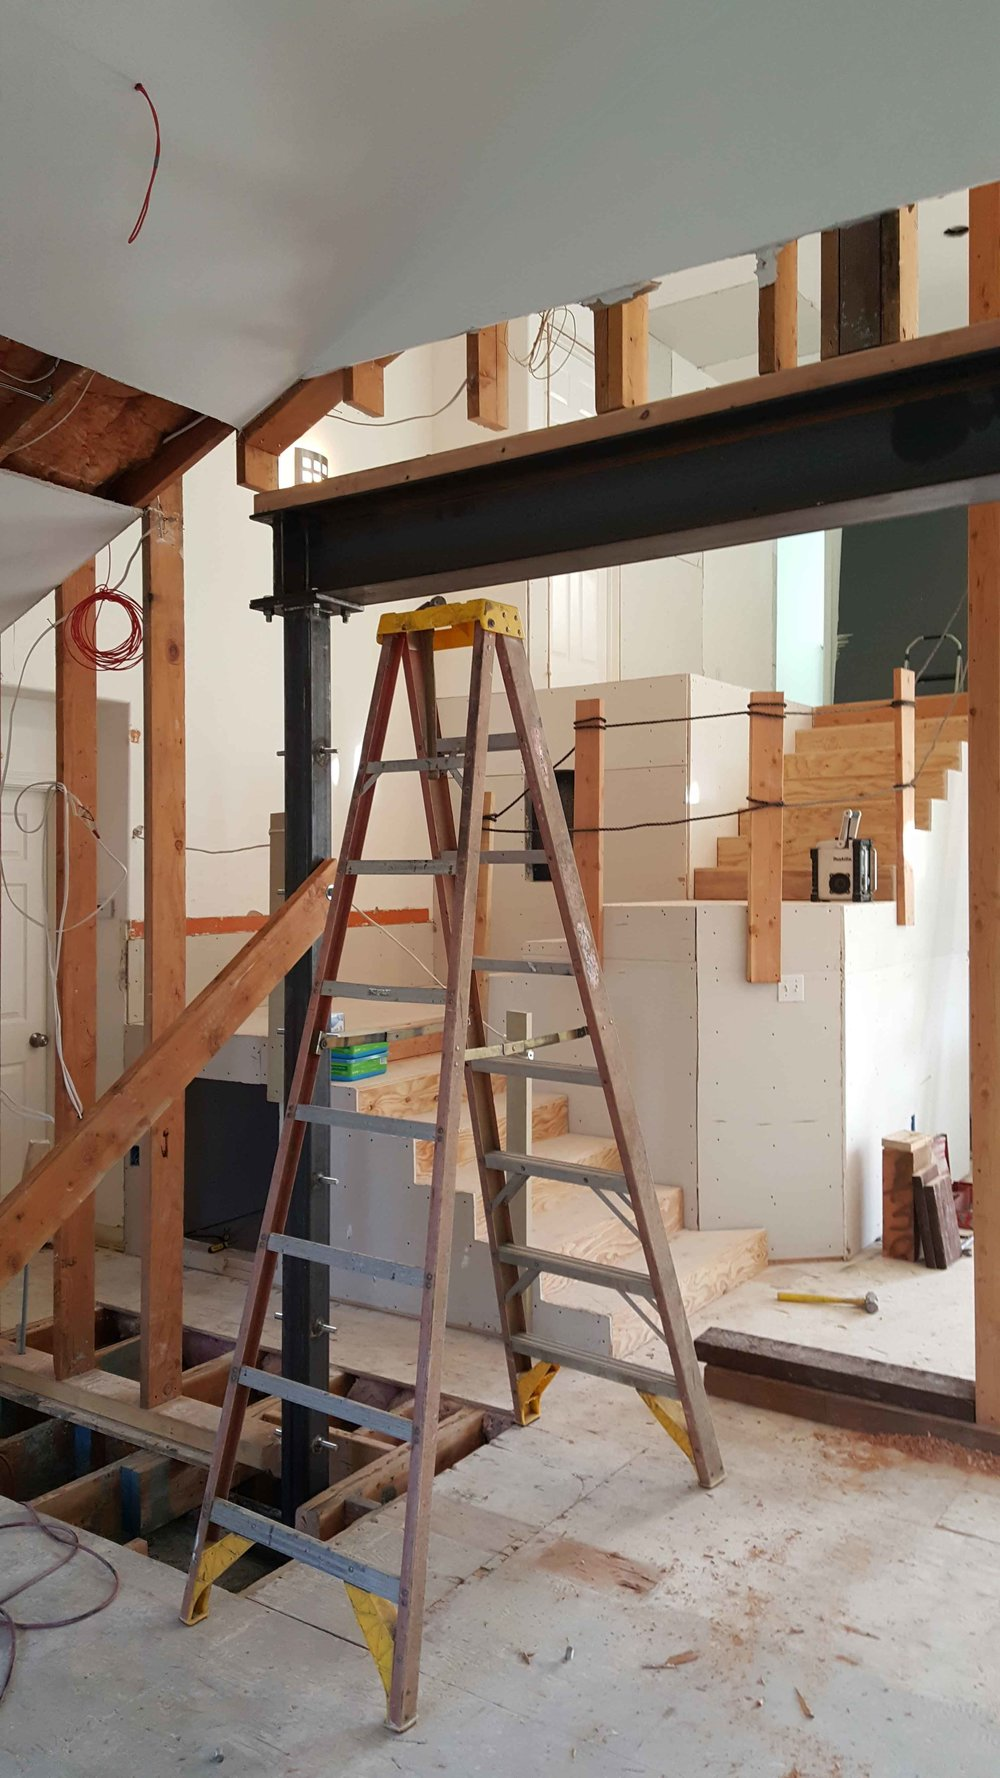 Removing an interior bearing wall and installing a new exposed steel beam.